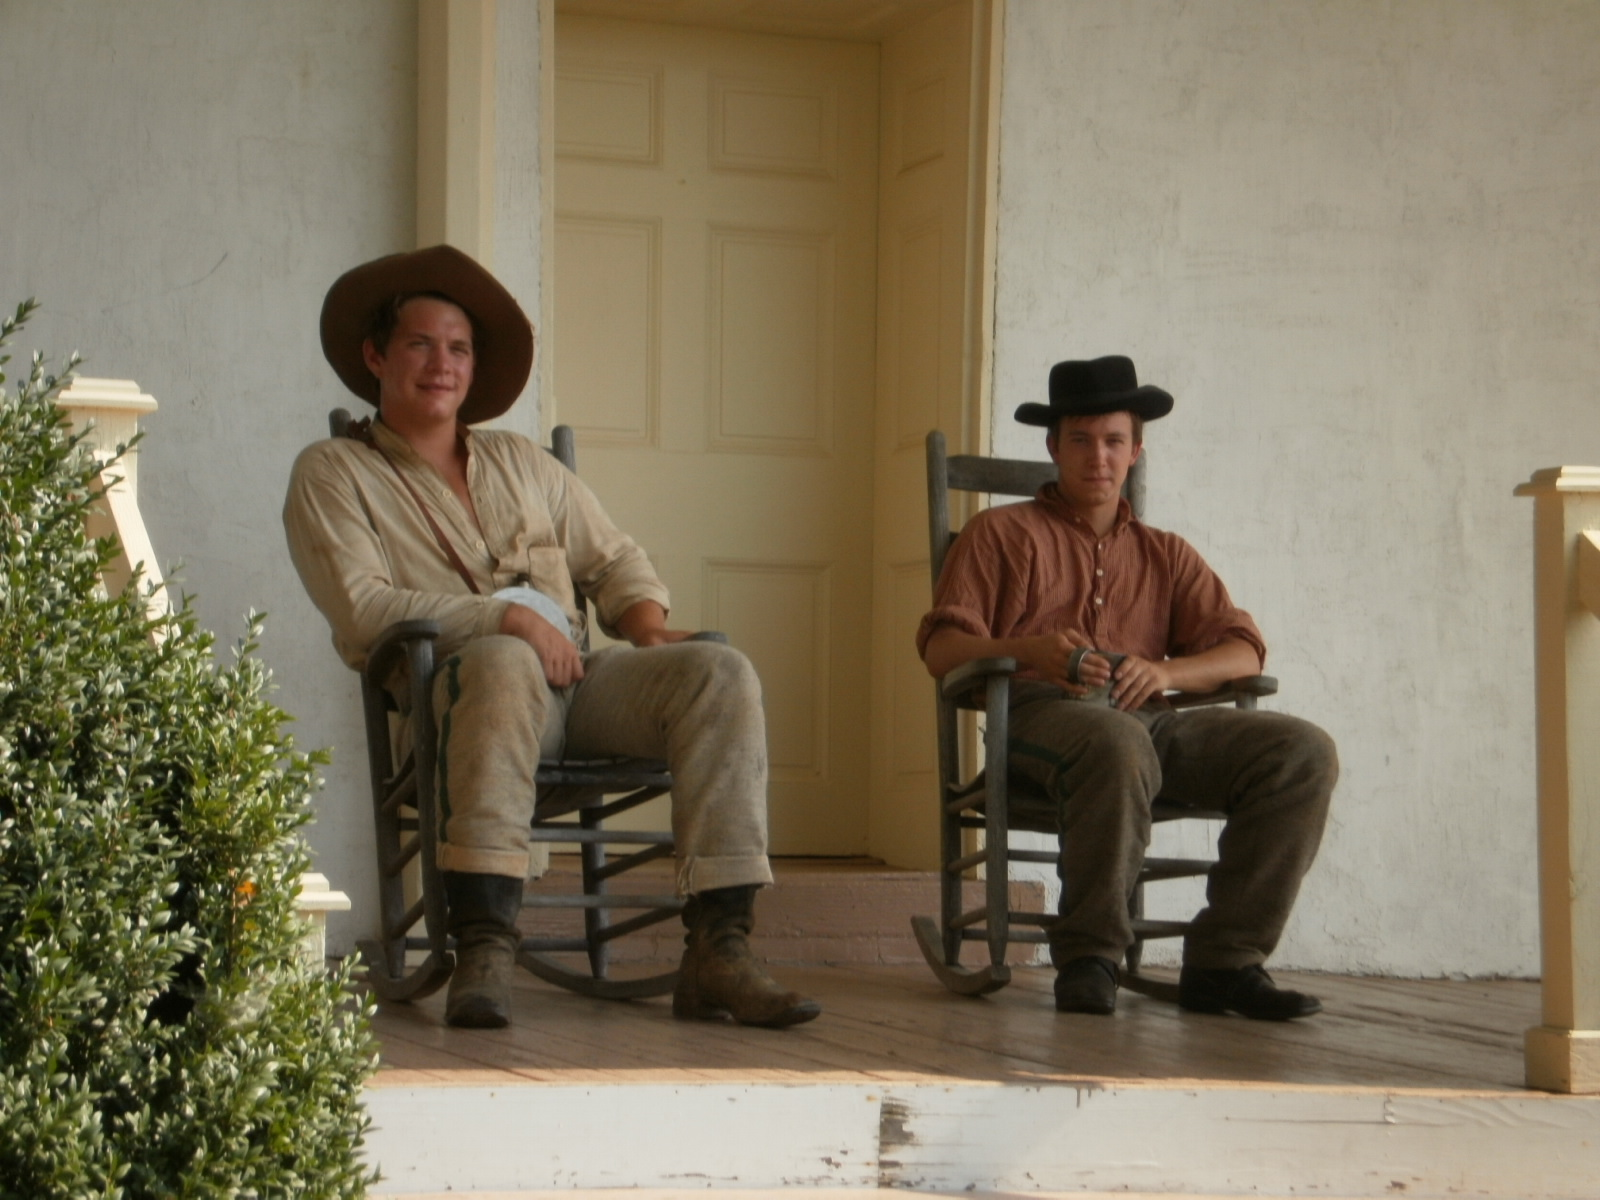 Two men in rocking chairs on a porch